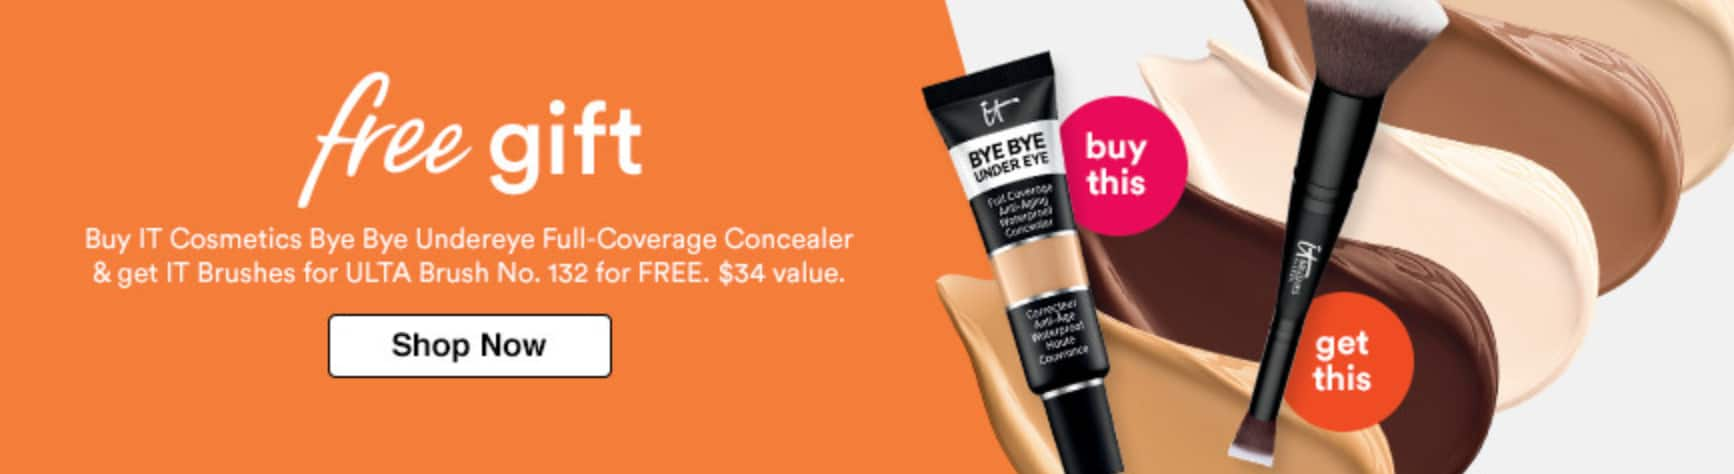 Free Gifts With Purchase IT Cosmetics ULTA